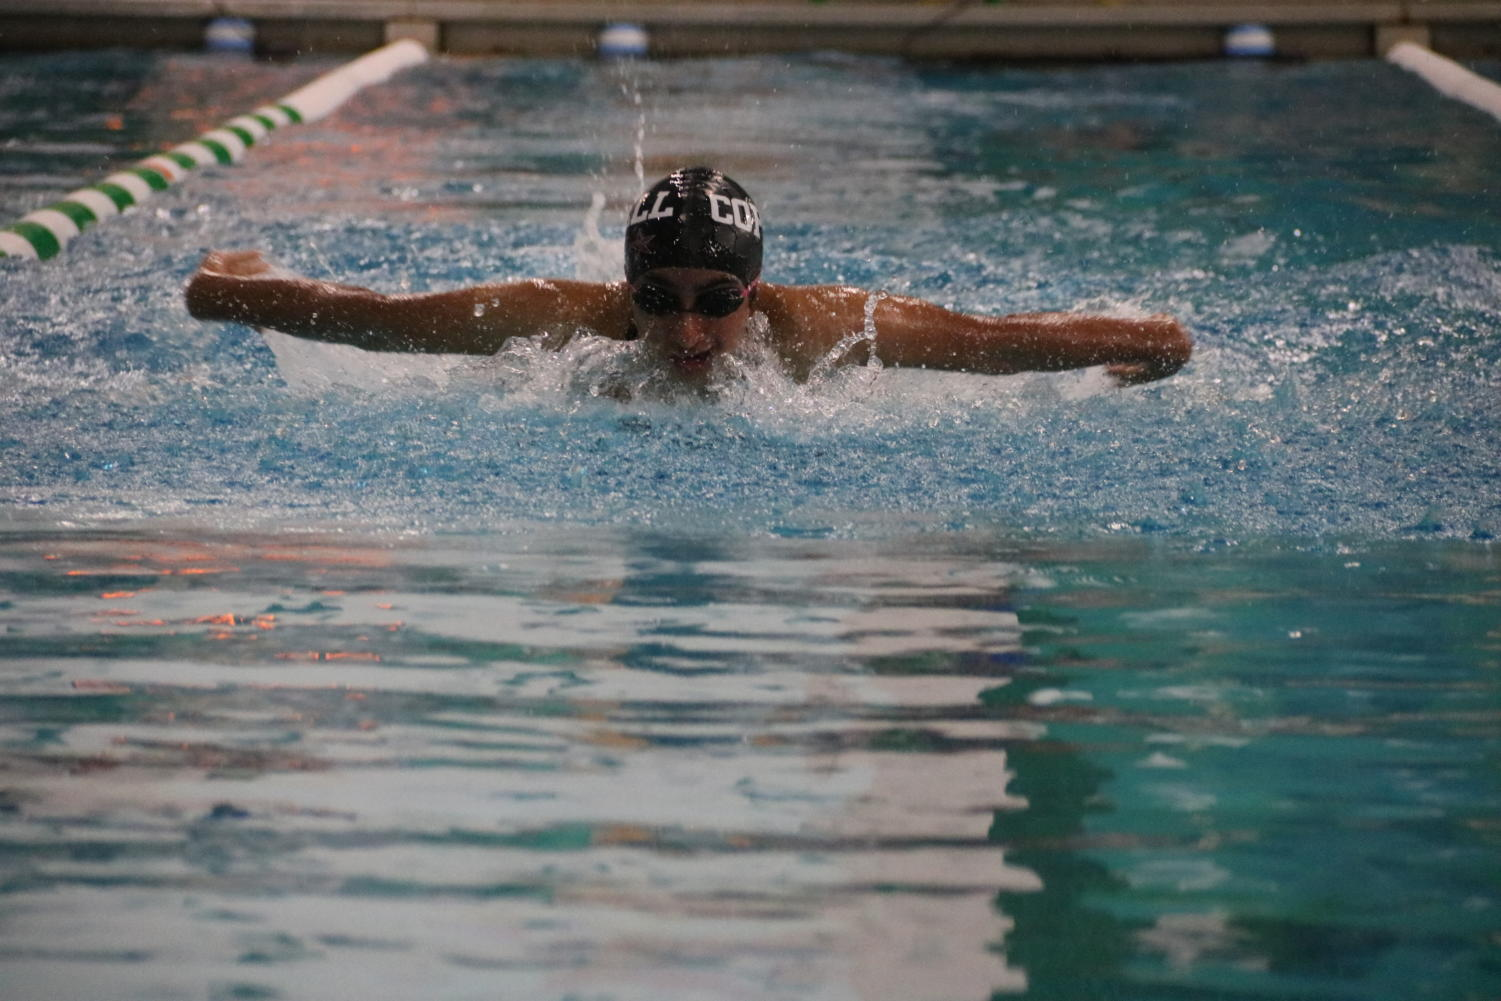 Coppell sophomore swimmer Krithi Meduri competes in the Dragon Hunt Invitational at the Carroll Natatorium in Southlake on Oct. 17. The Vaquero Battle meet will be held tomorrow at 4:30 p.m. in the Coppell YMCA. Photo by Tracy Tran.